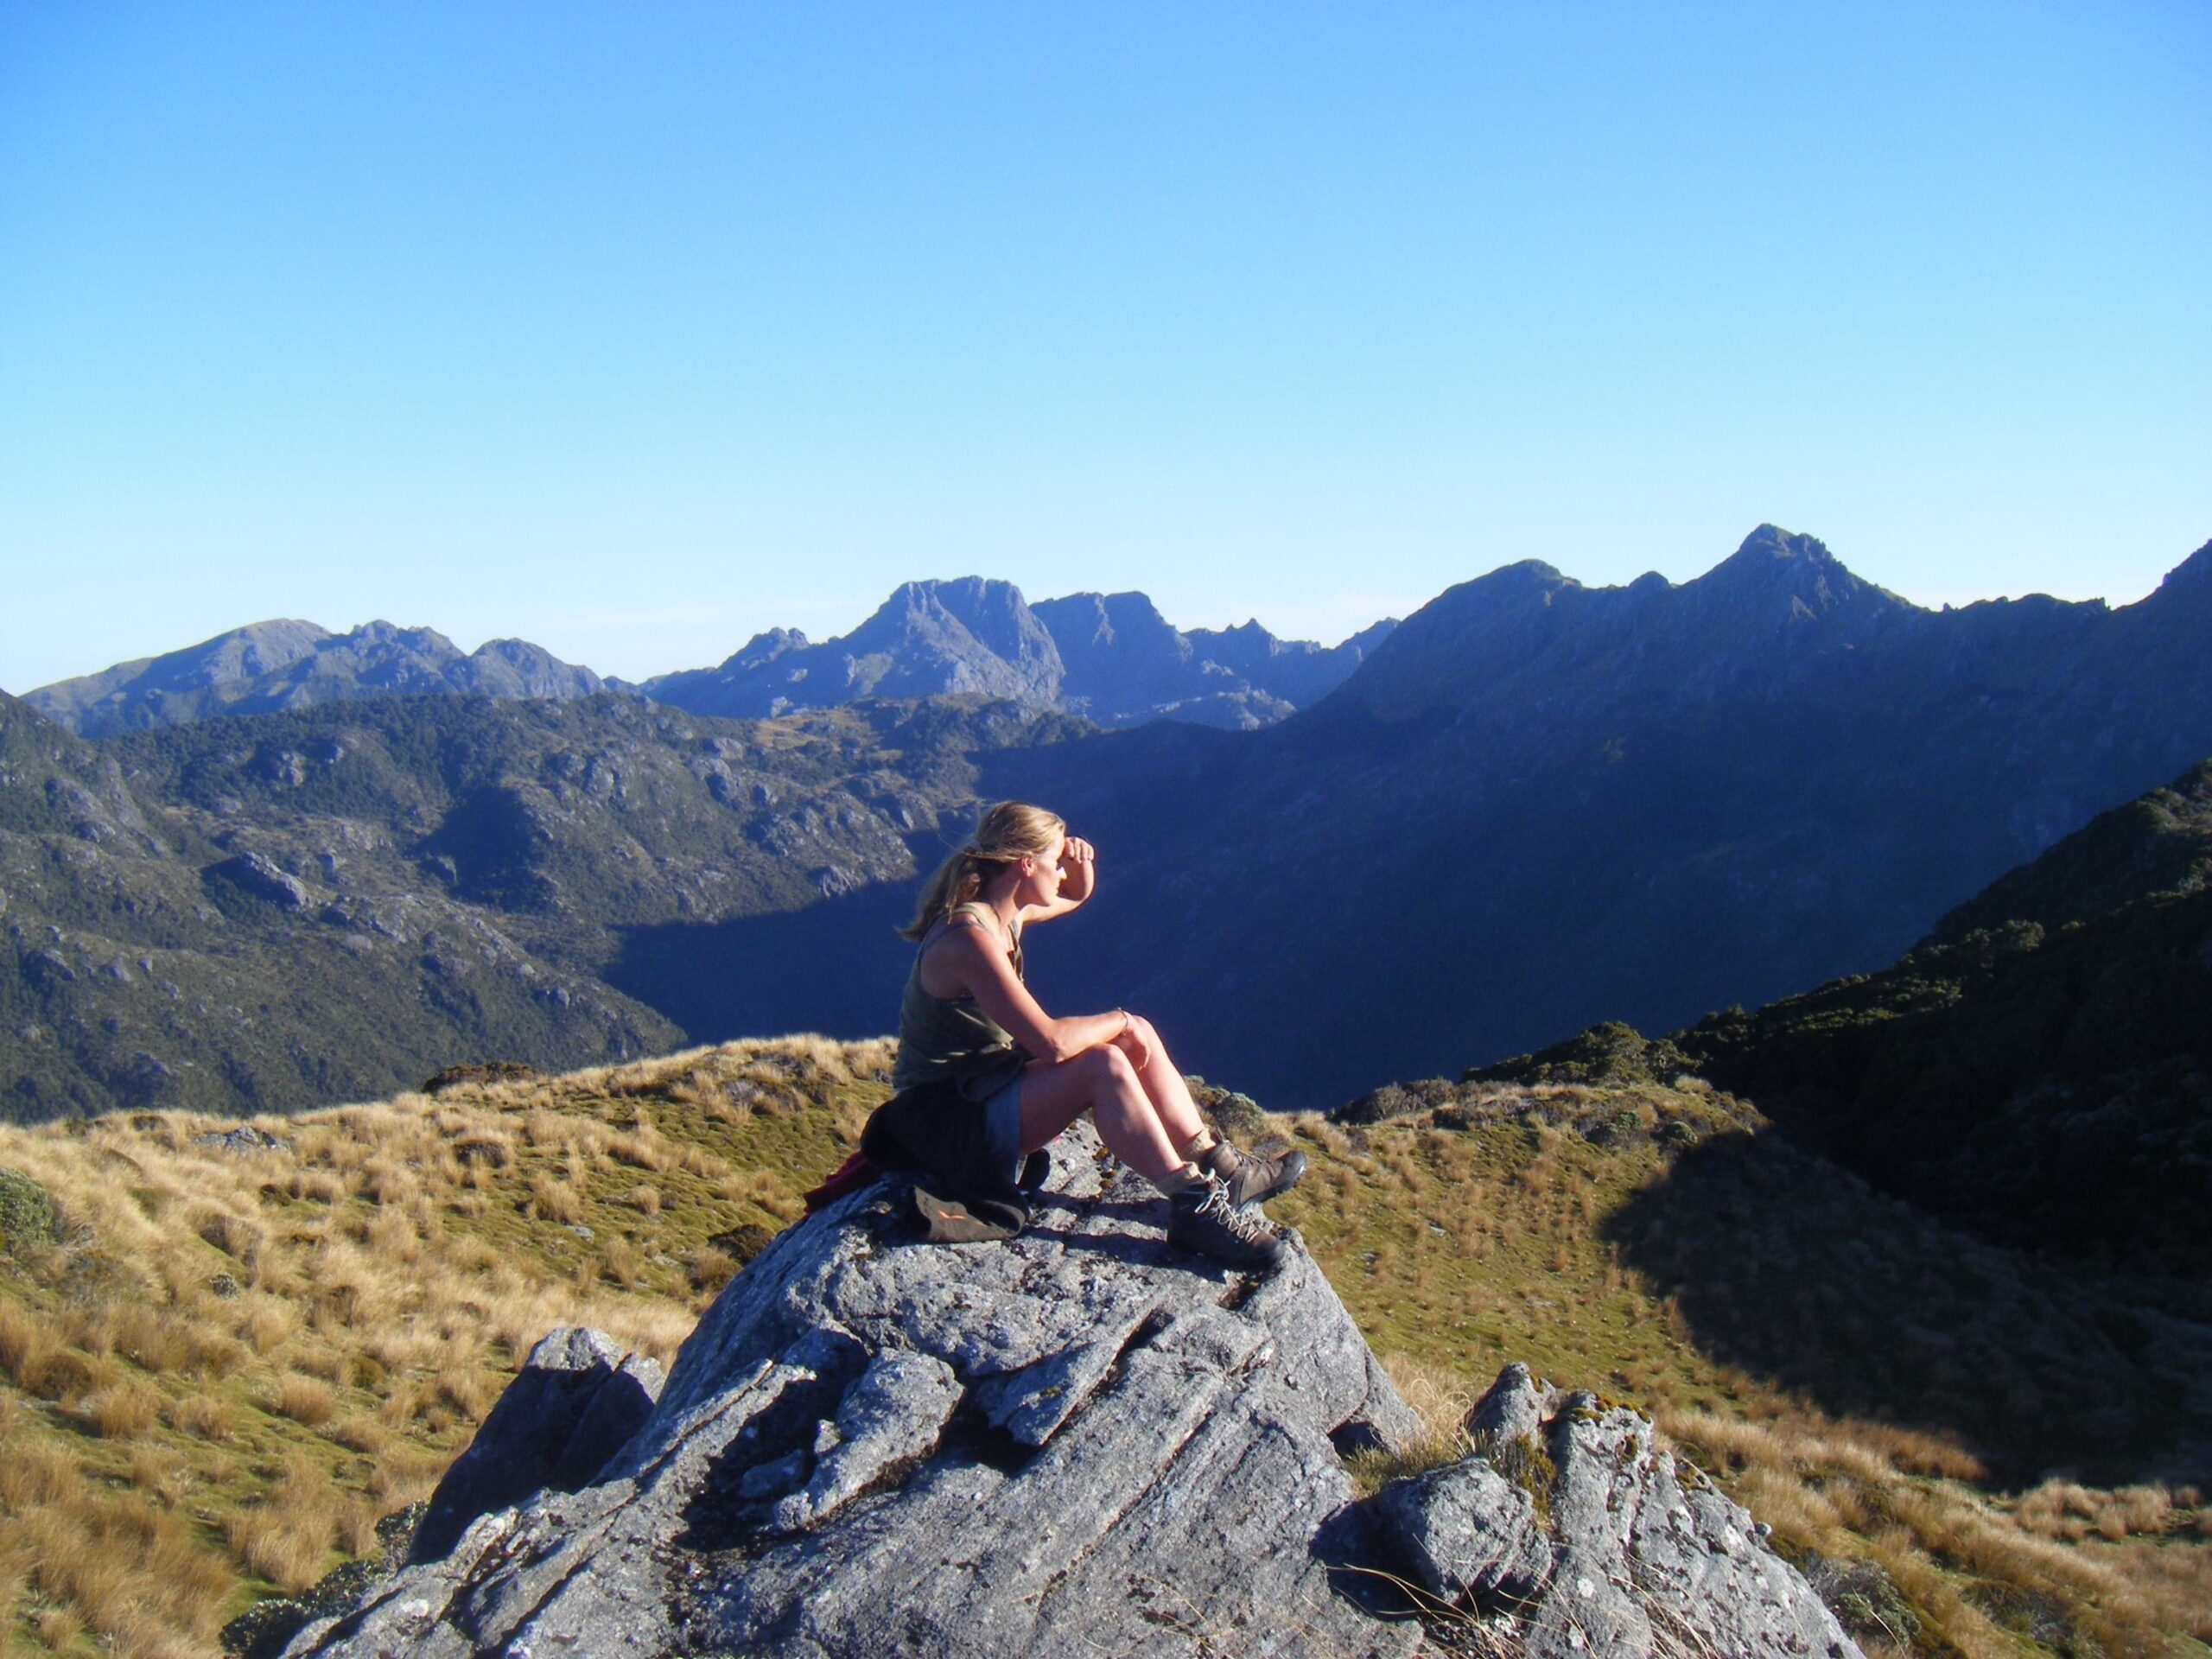 Miriam Lancewood sitting on a rock overlooking mountains